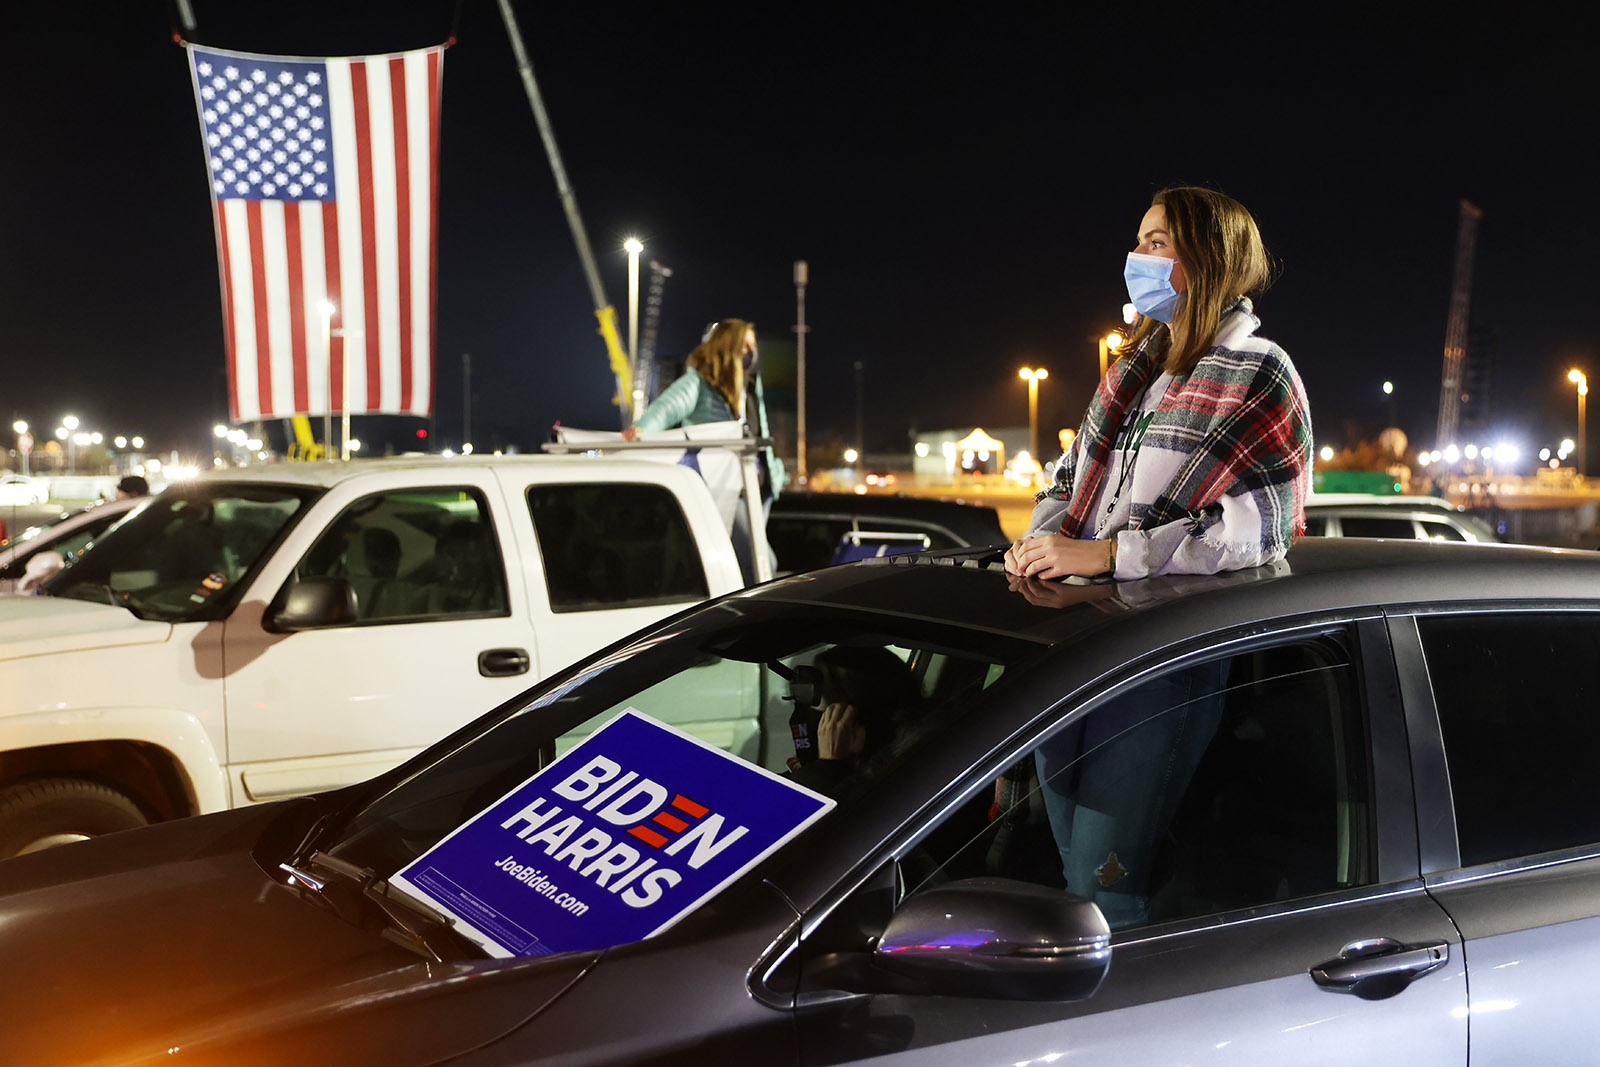 A supporter attends a drive-in election night event for Democratic presidential nominee Joe Biden at the Chase Center.